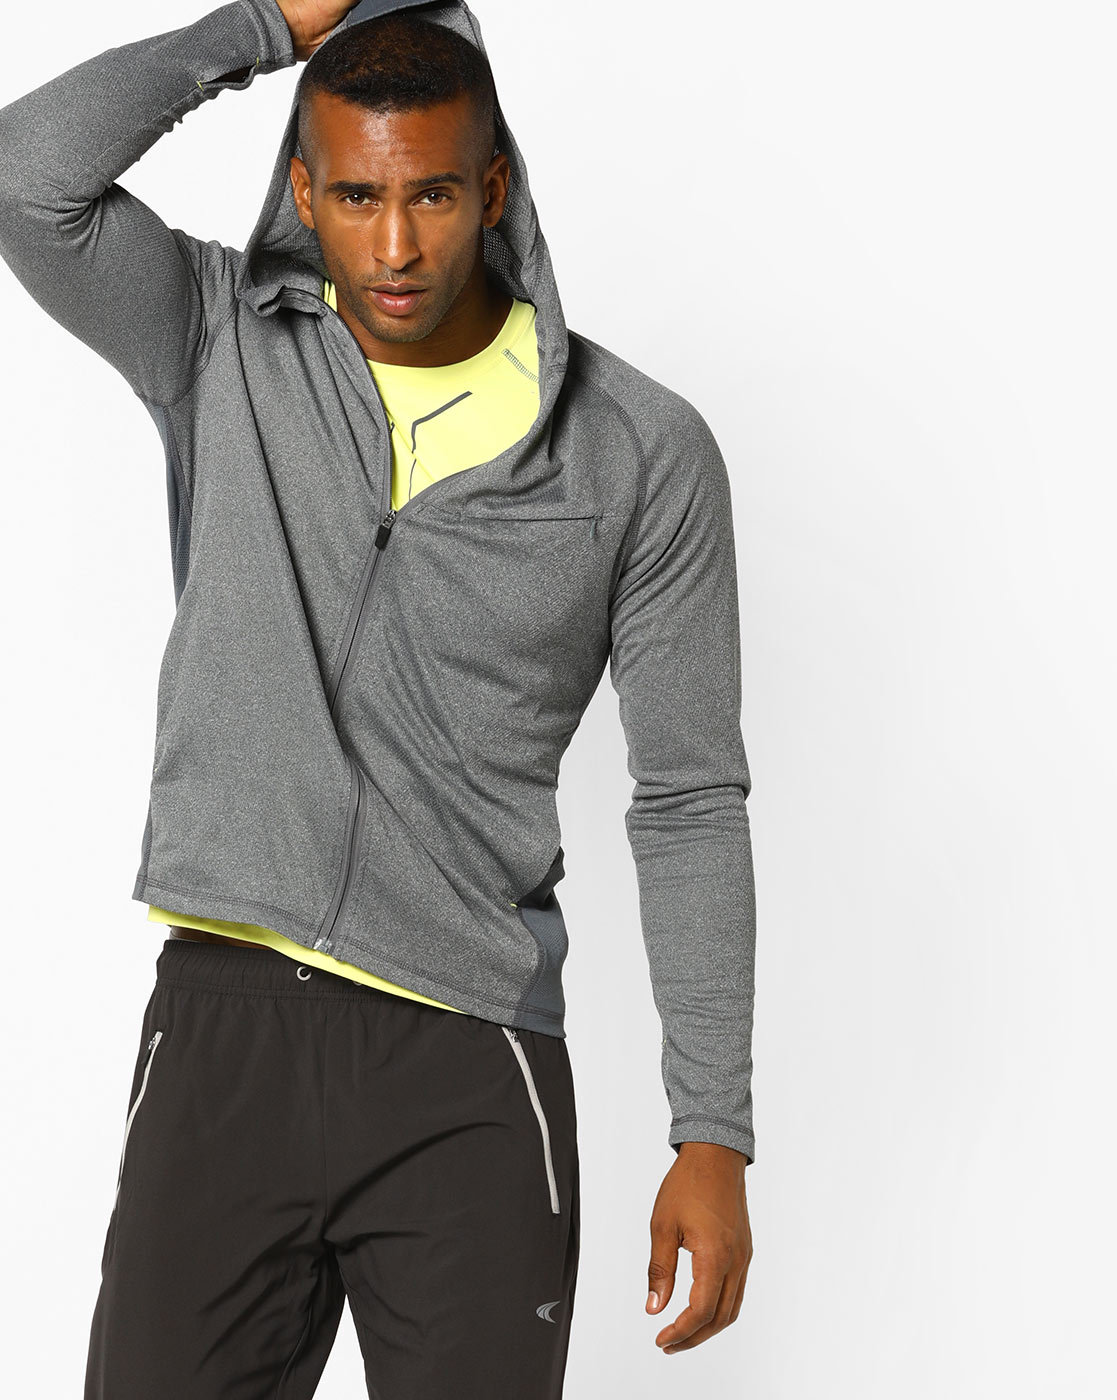 f580dab2cc Men's Activewear Jacket Ss18 - Buy Good Quality Custom Hoodie,Long Sleeve  Kangaroo Polar Fleece Hoodie,Cheap Plain Hoodies Product on Alibaba.com